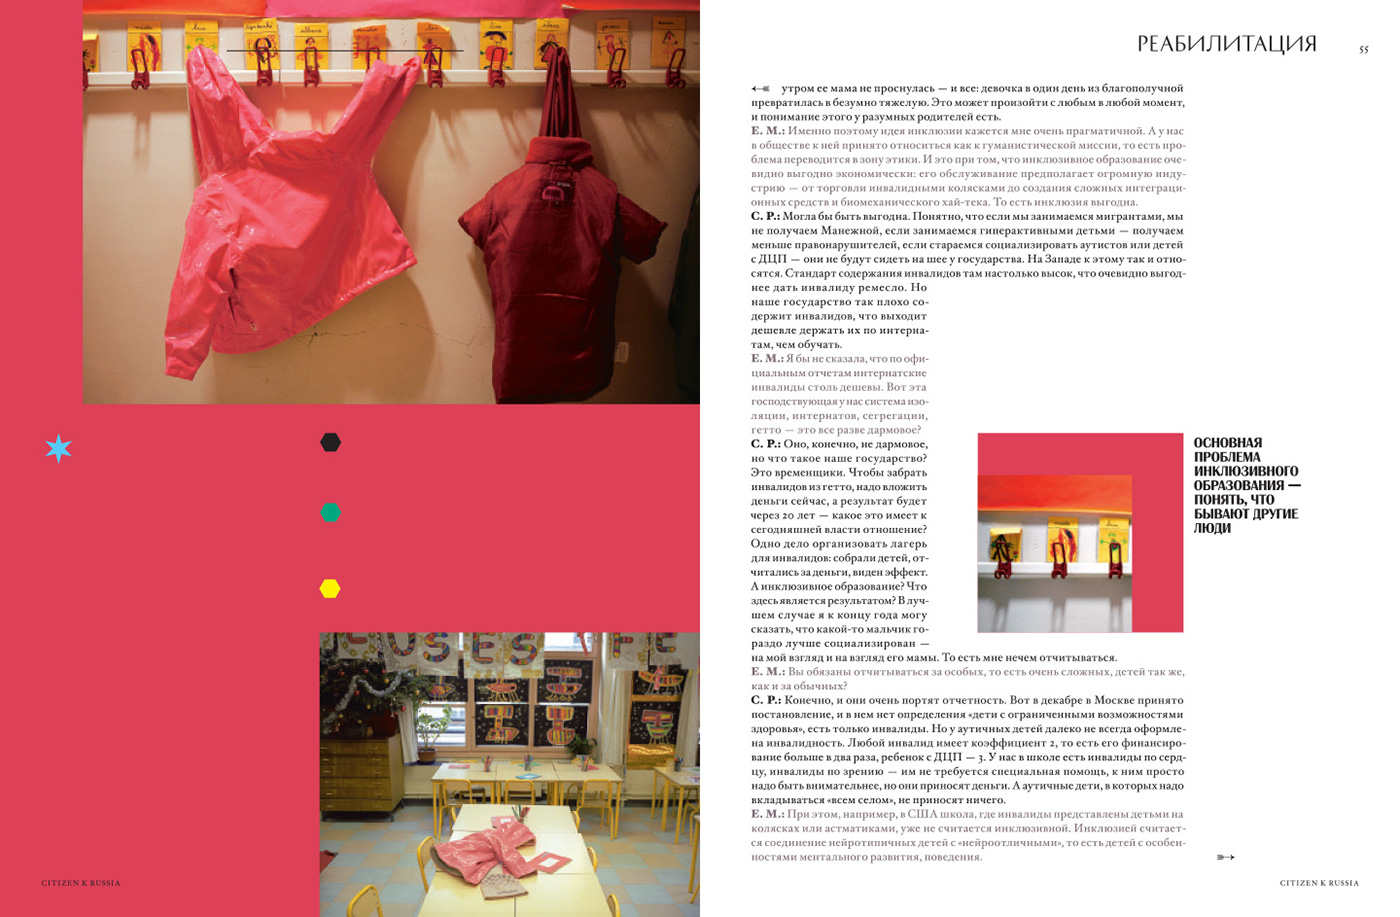 citizen k grid magazine editorial Russia FUTURISM avant garde france Moscow